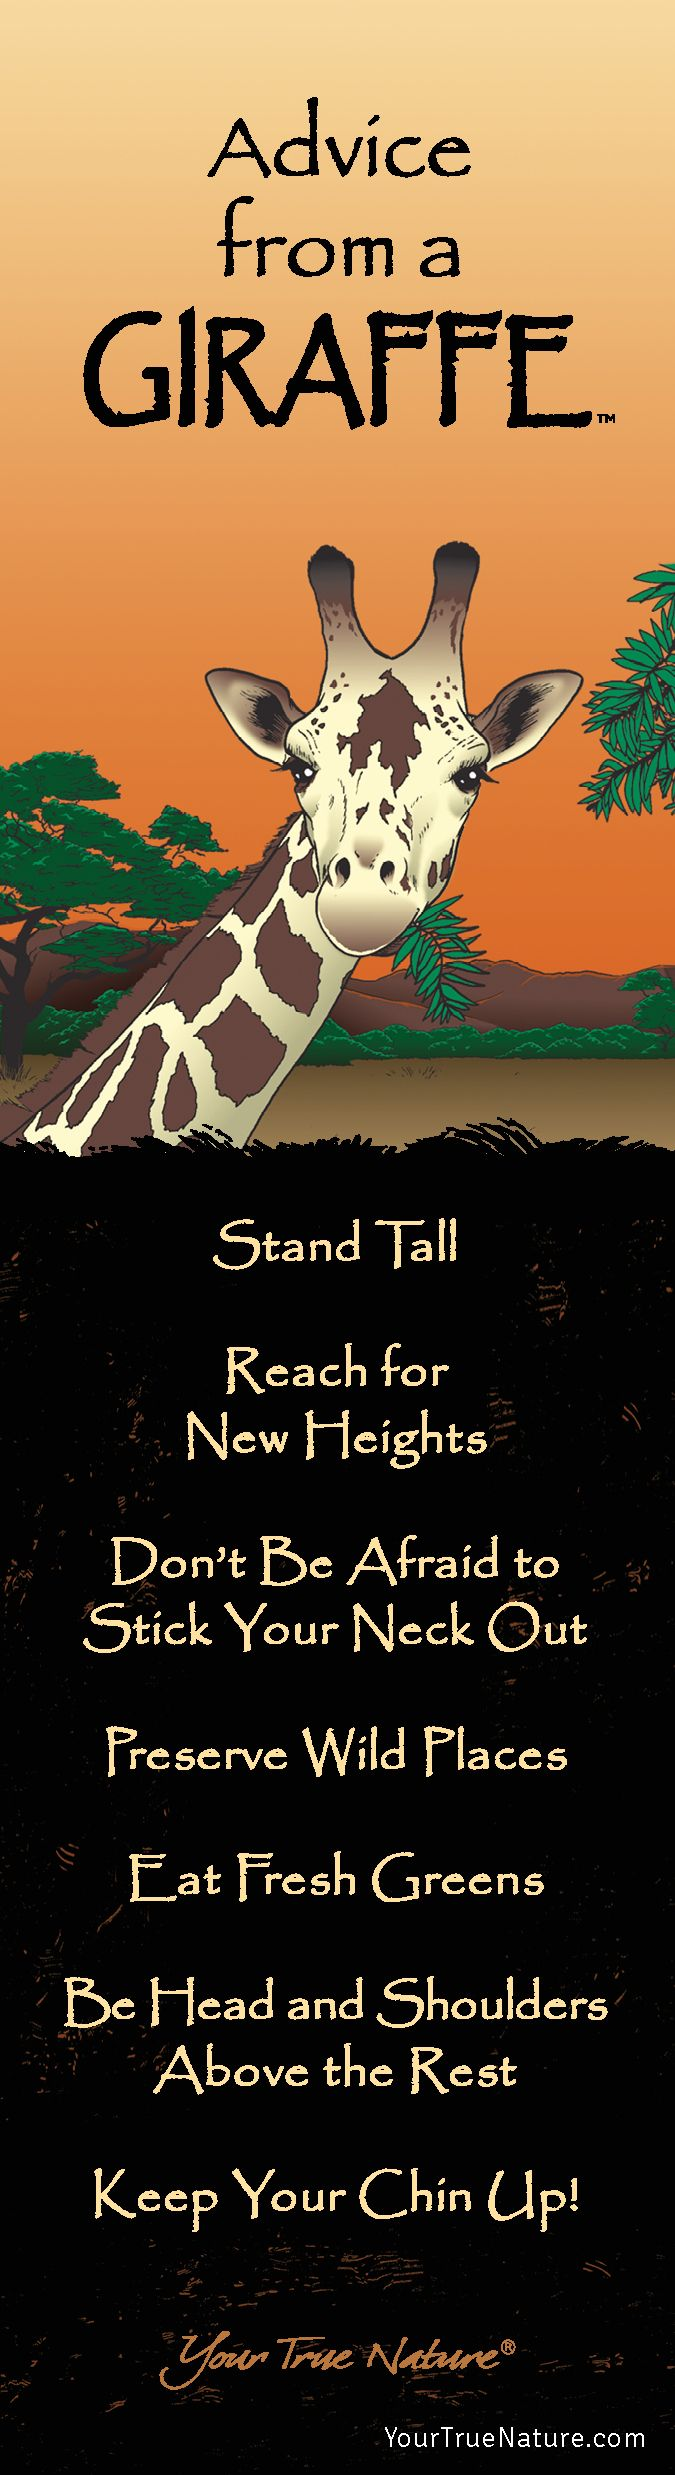 Beauty Advice from a Giraffe: Stand Tall! Your True Nature